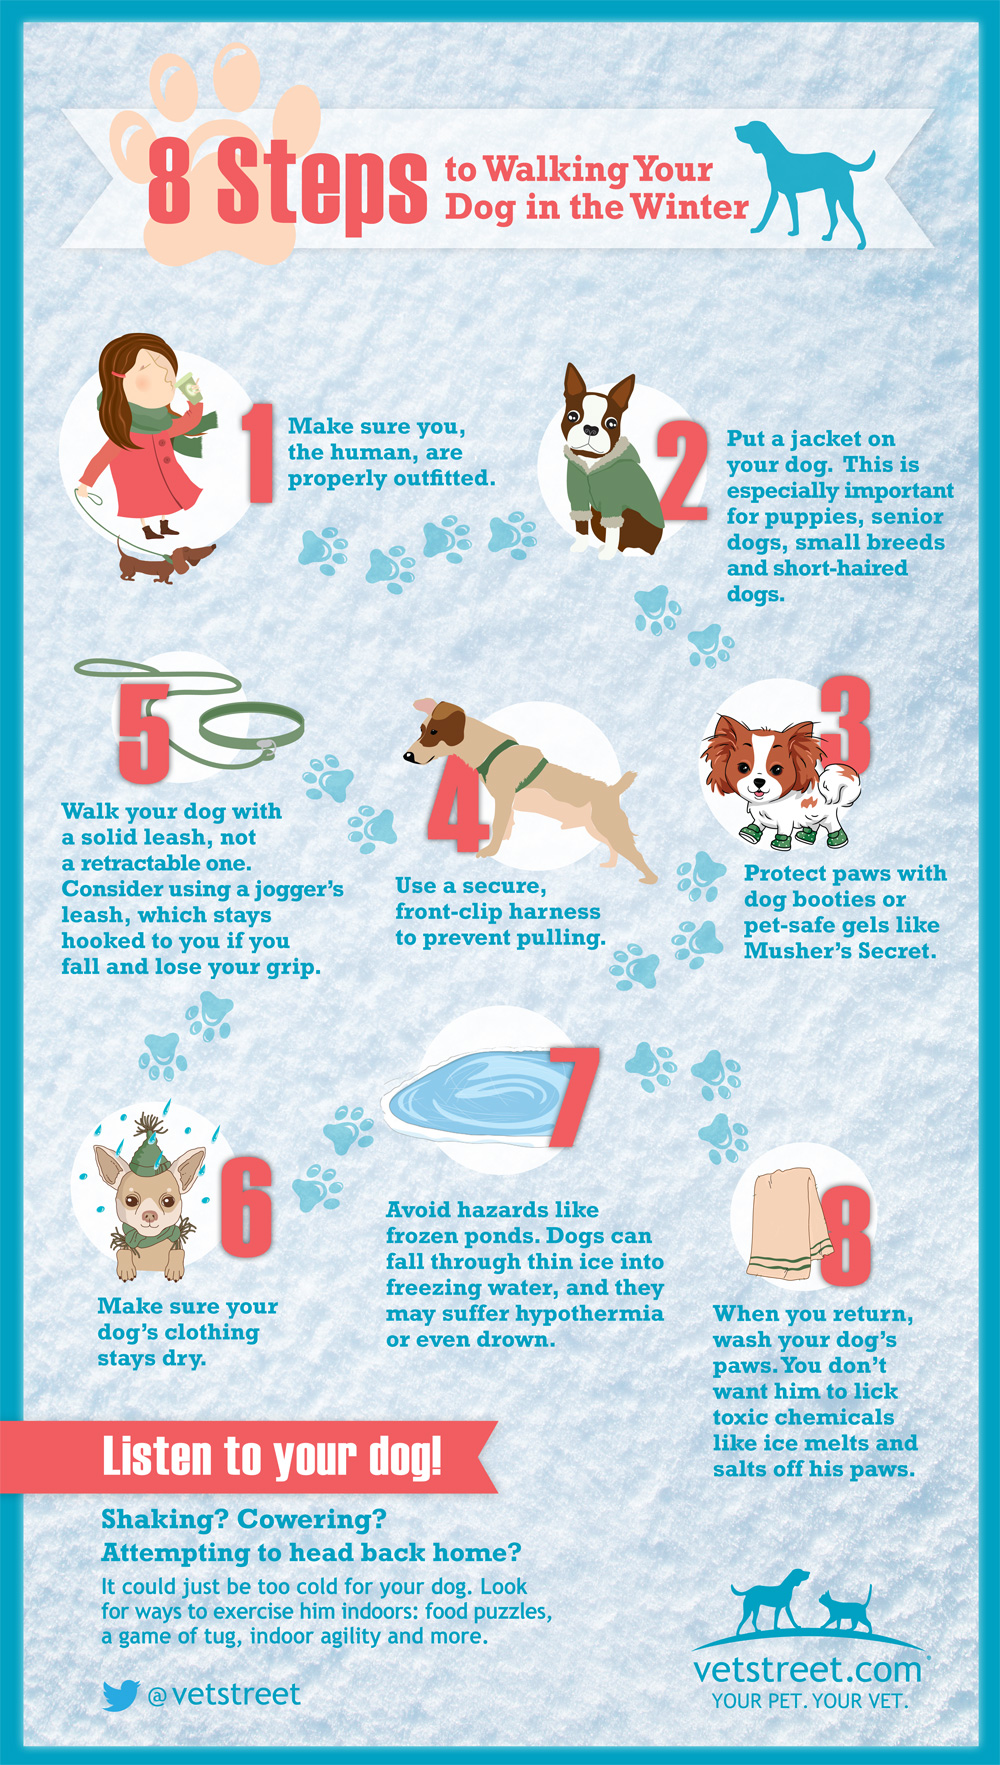 8 Steps to Walking the Dog in the Winter